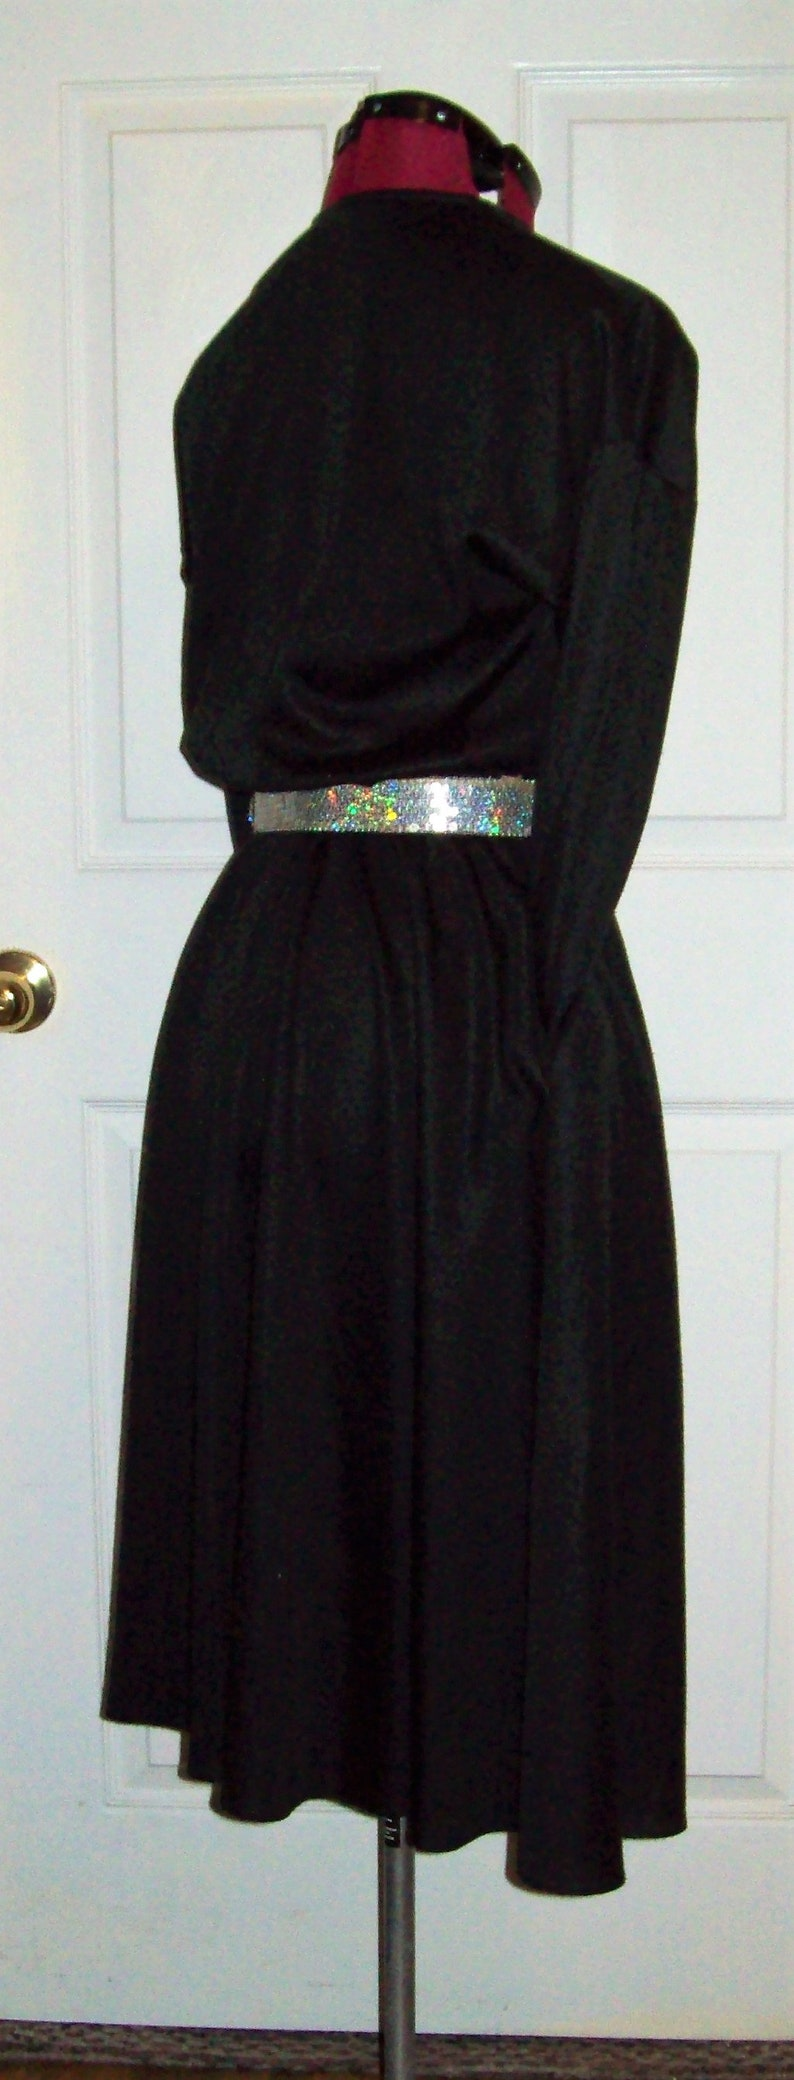 Vintage Black Flared Skirt Henley Dress w POCKETS /& Silver Sequin Belt by Rhodes Collections Inc Size 10 Modest Only 15 USD